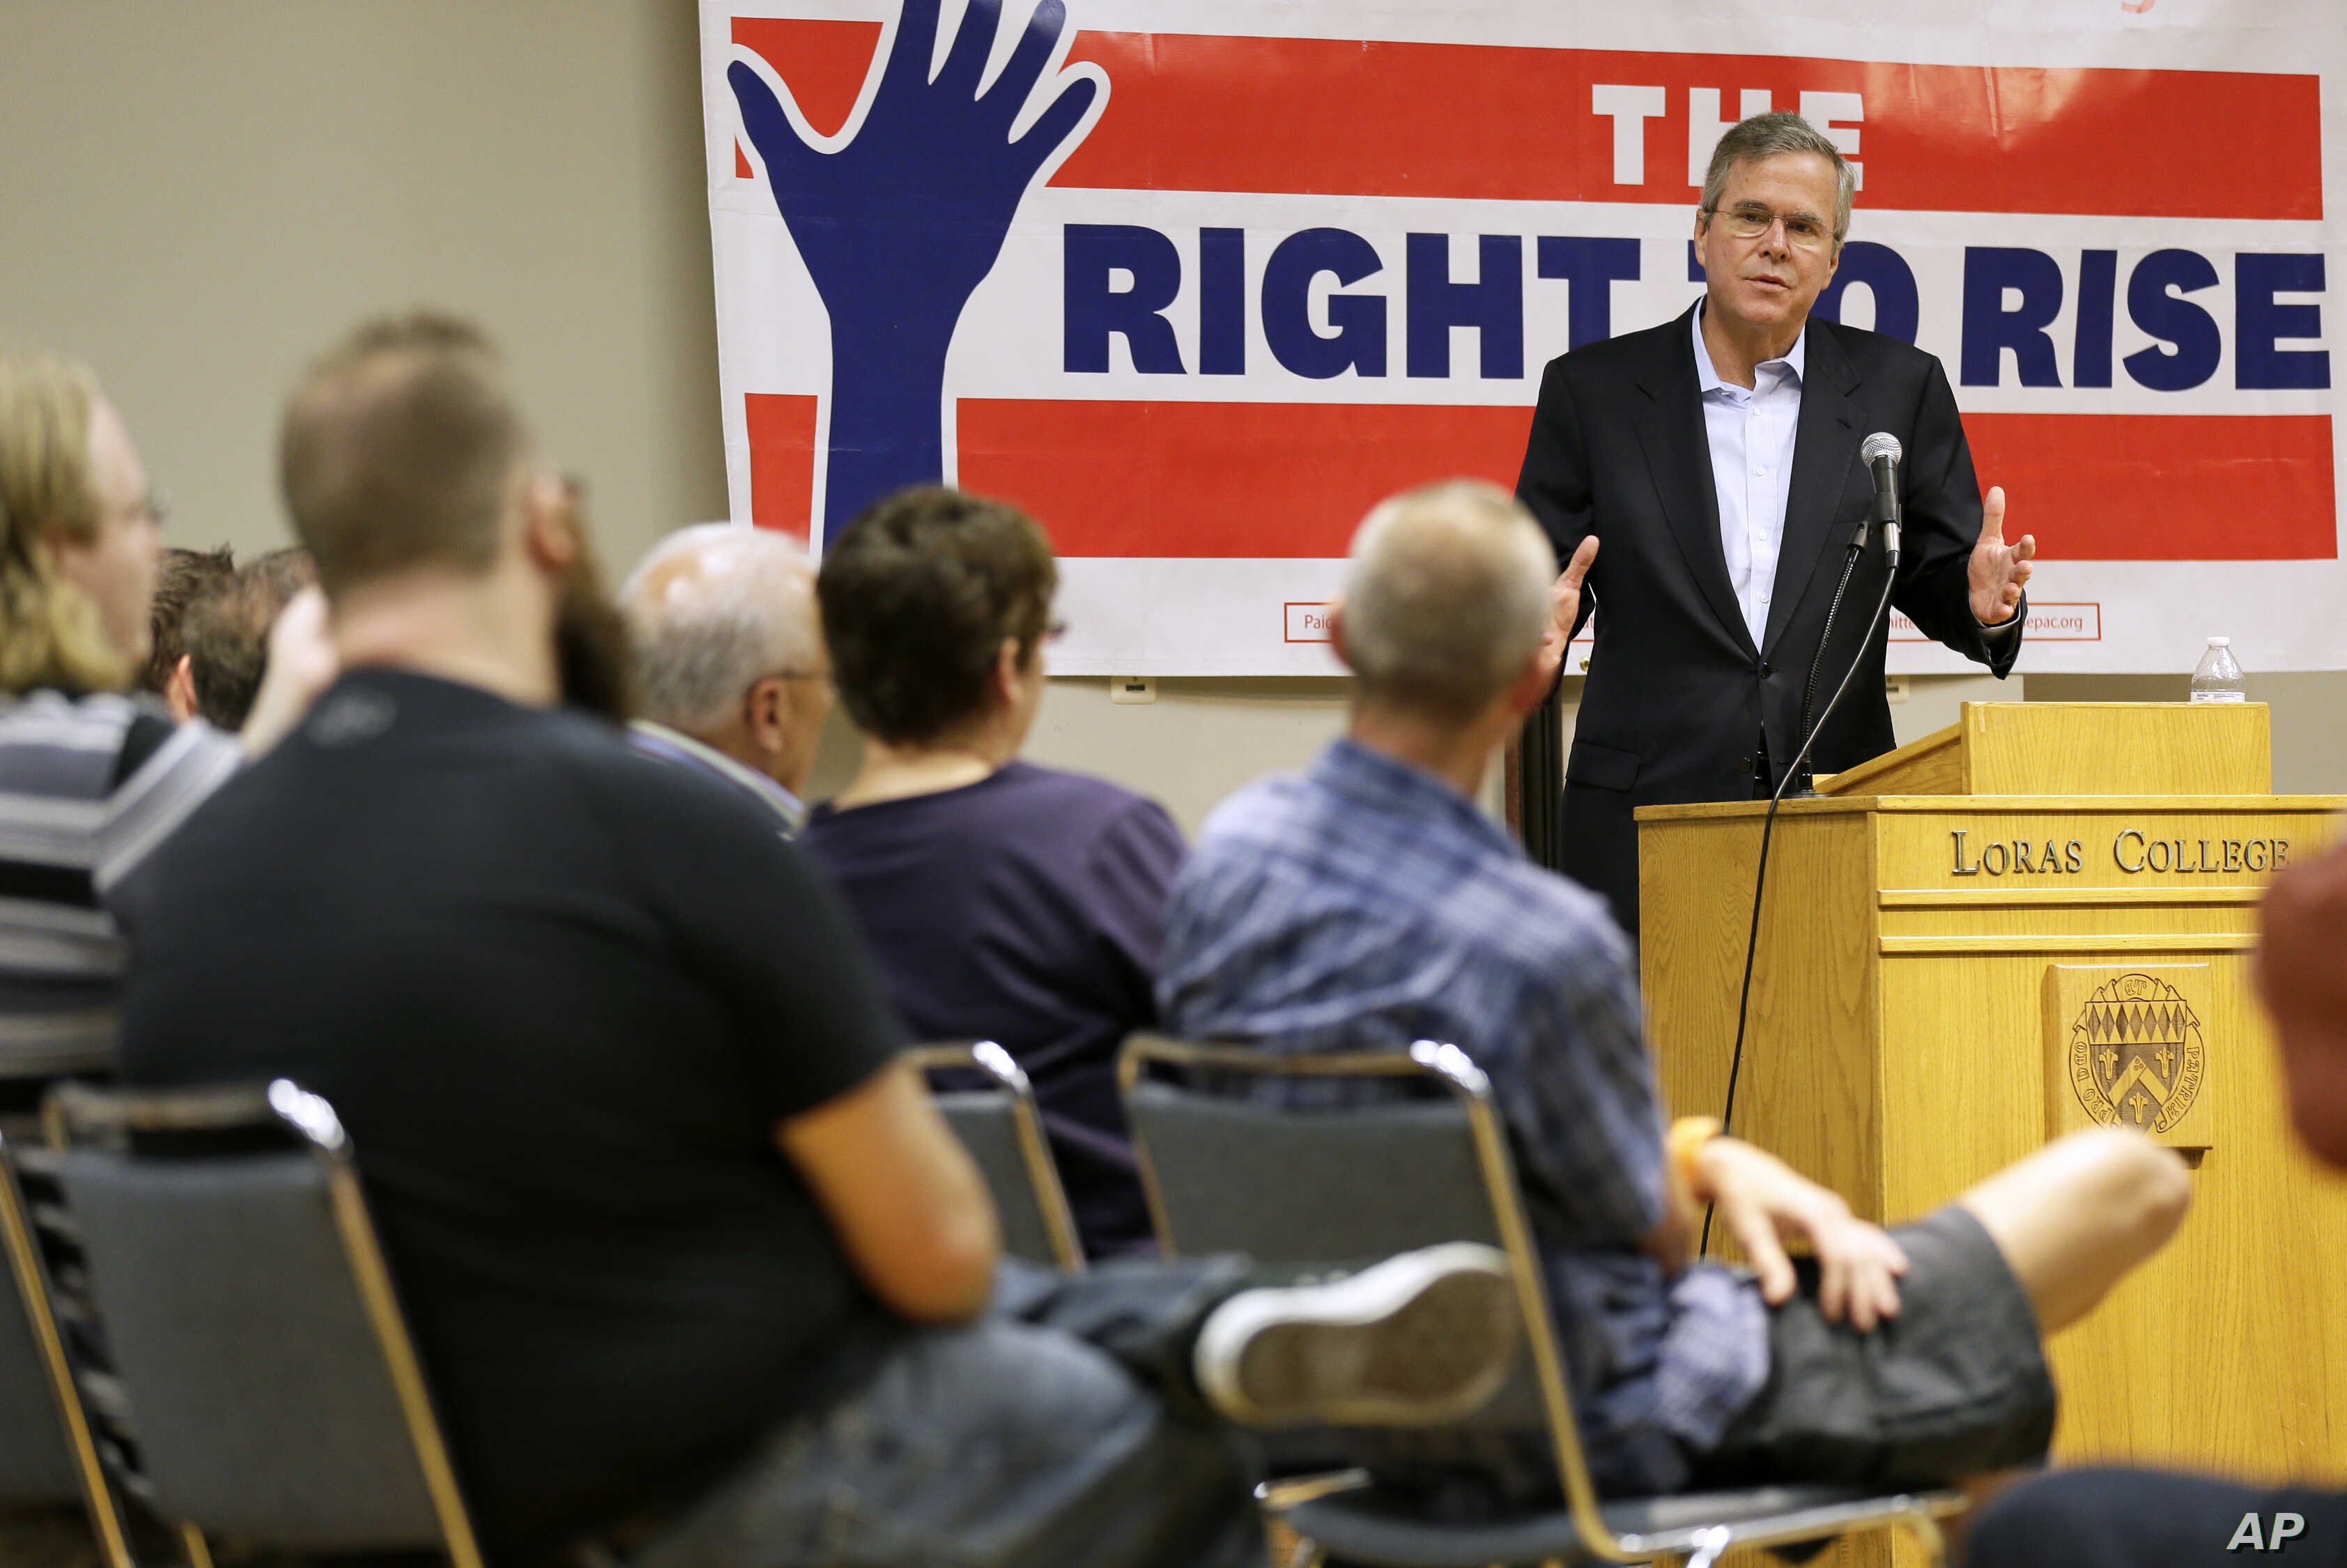 Former Florida Gov. Jeb Bush speaks during a town hall meeting, May 16, 2015, at Loras College in Dubuque, Iowa.